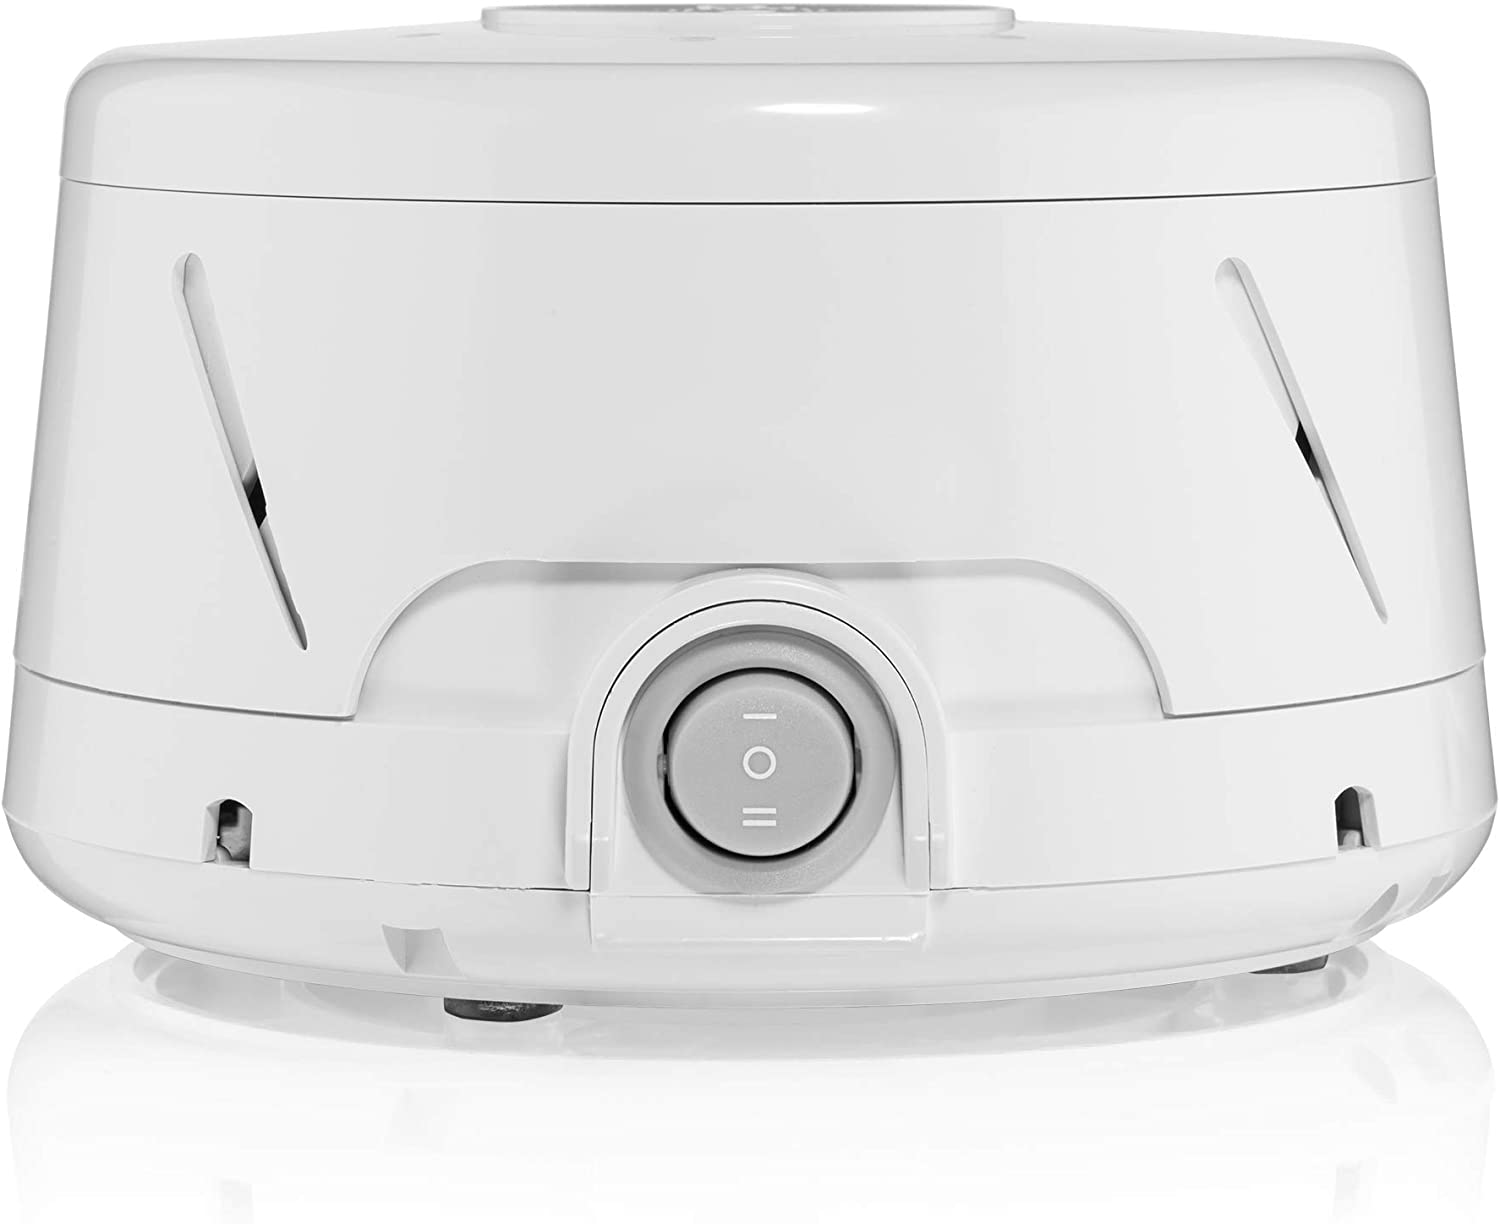 Marpac Dohm Classic (White) | The Original White Noise Machine | Soothing Natural Sound from a Real Fan | Noise Cancelling | Sleep Therapy, Office Privacy, Travel | For Adults & Baby | 101 Night Trial: Health & Personal Care